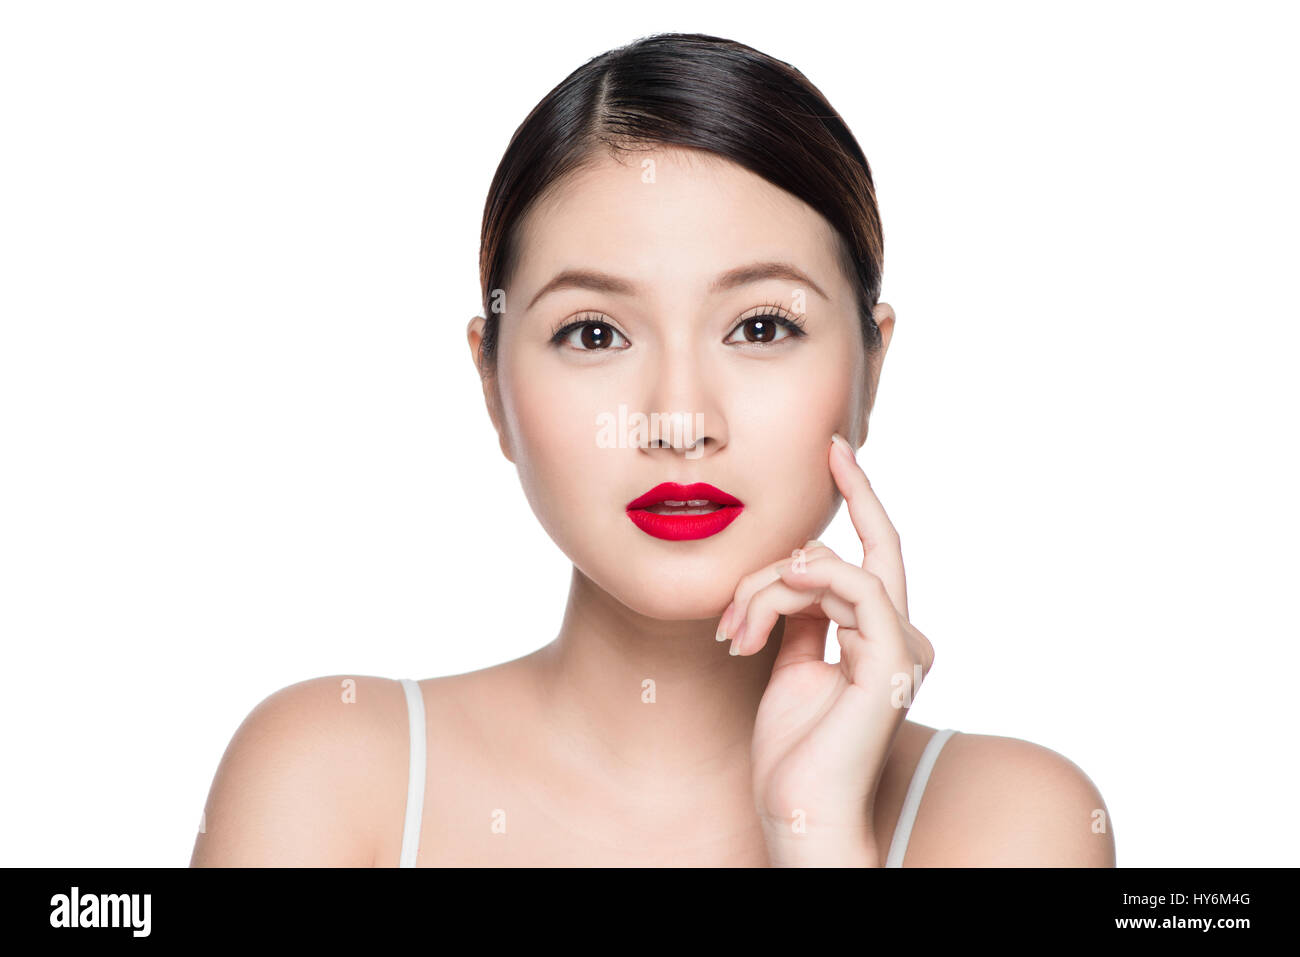 Beautiful asian woman with retro makeup with red lips isolated on white background.